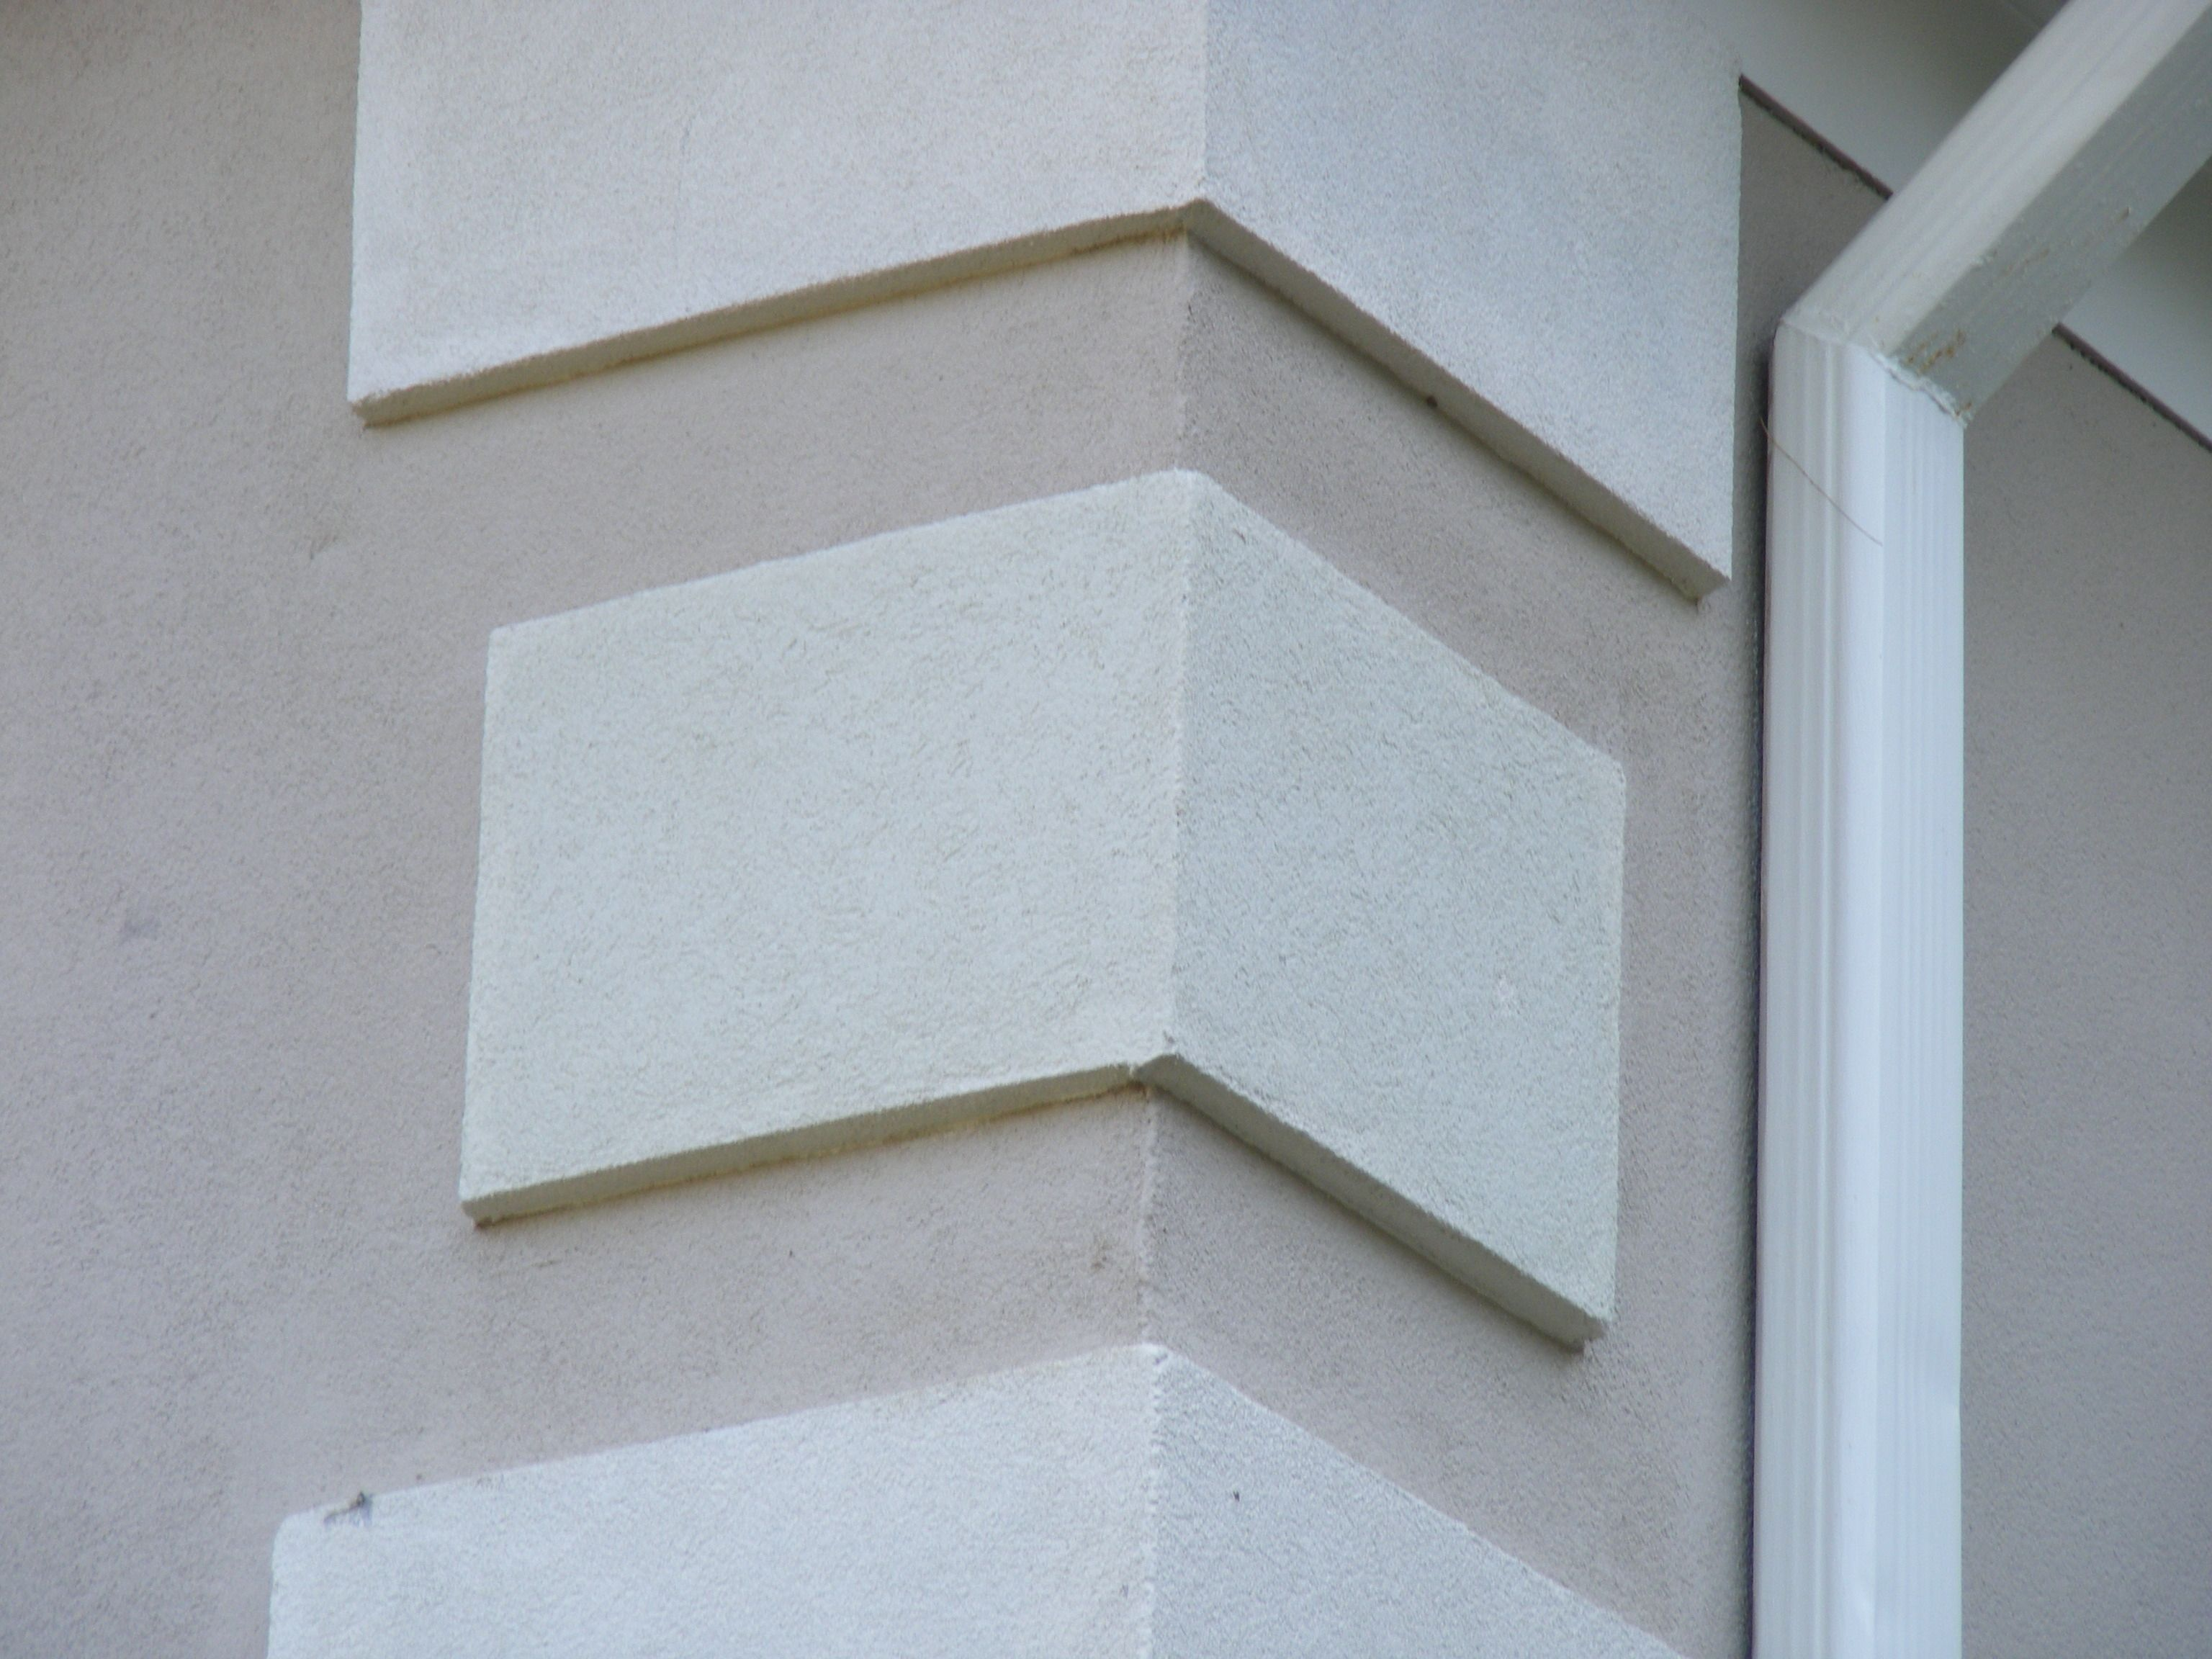 Quoins pronounced coins are often found on the corners Exterior wall plaster design